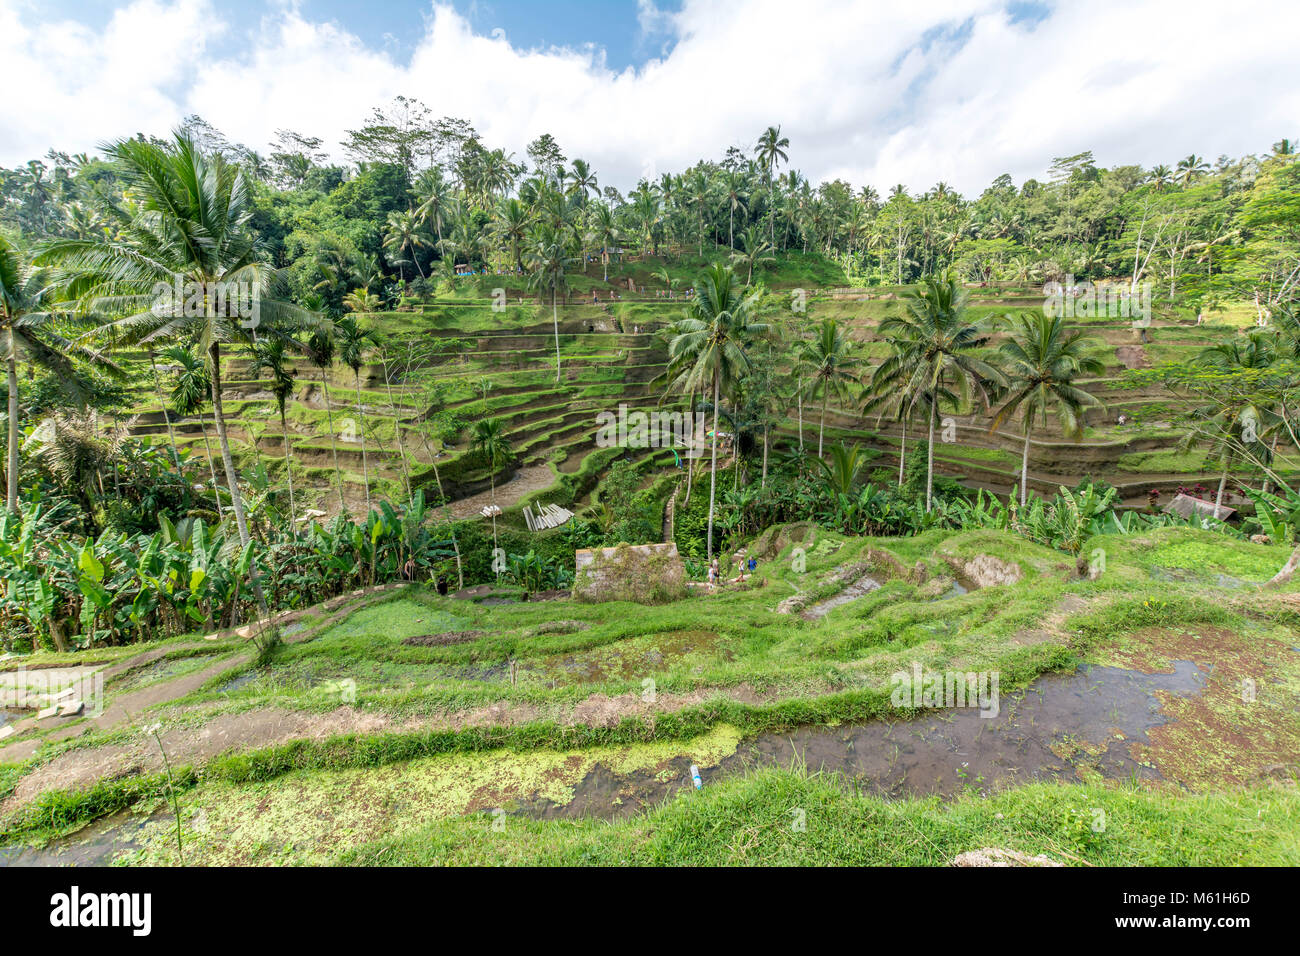 Rice terraces in Tegallalang, Ubud, Bali, Indonesia - Stock Image